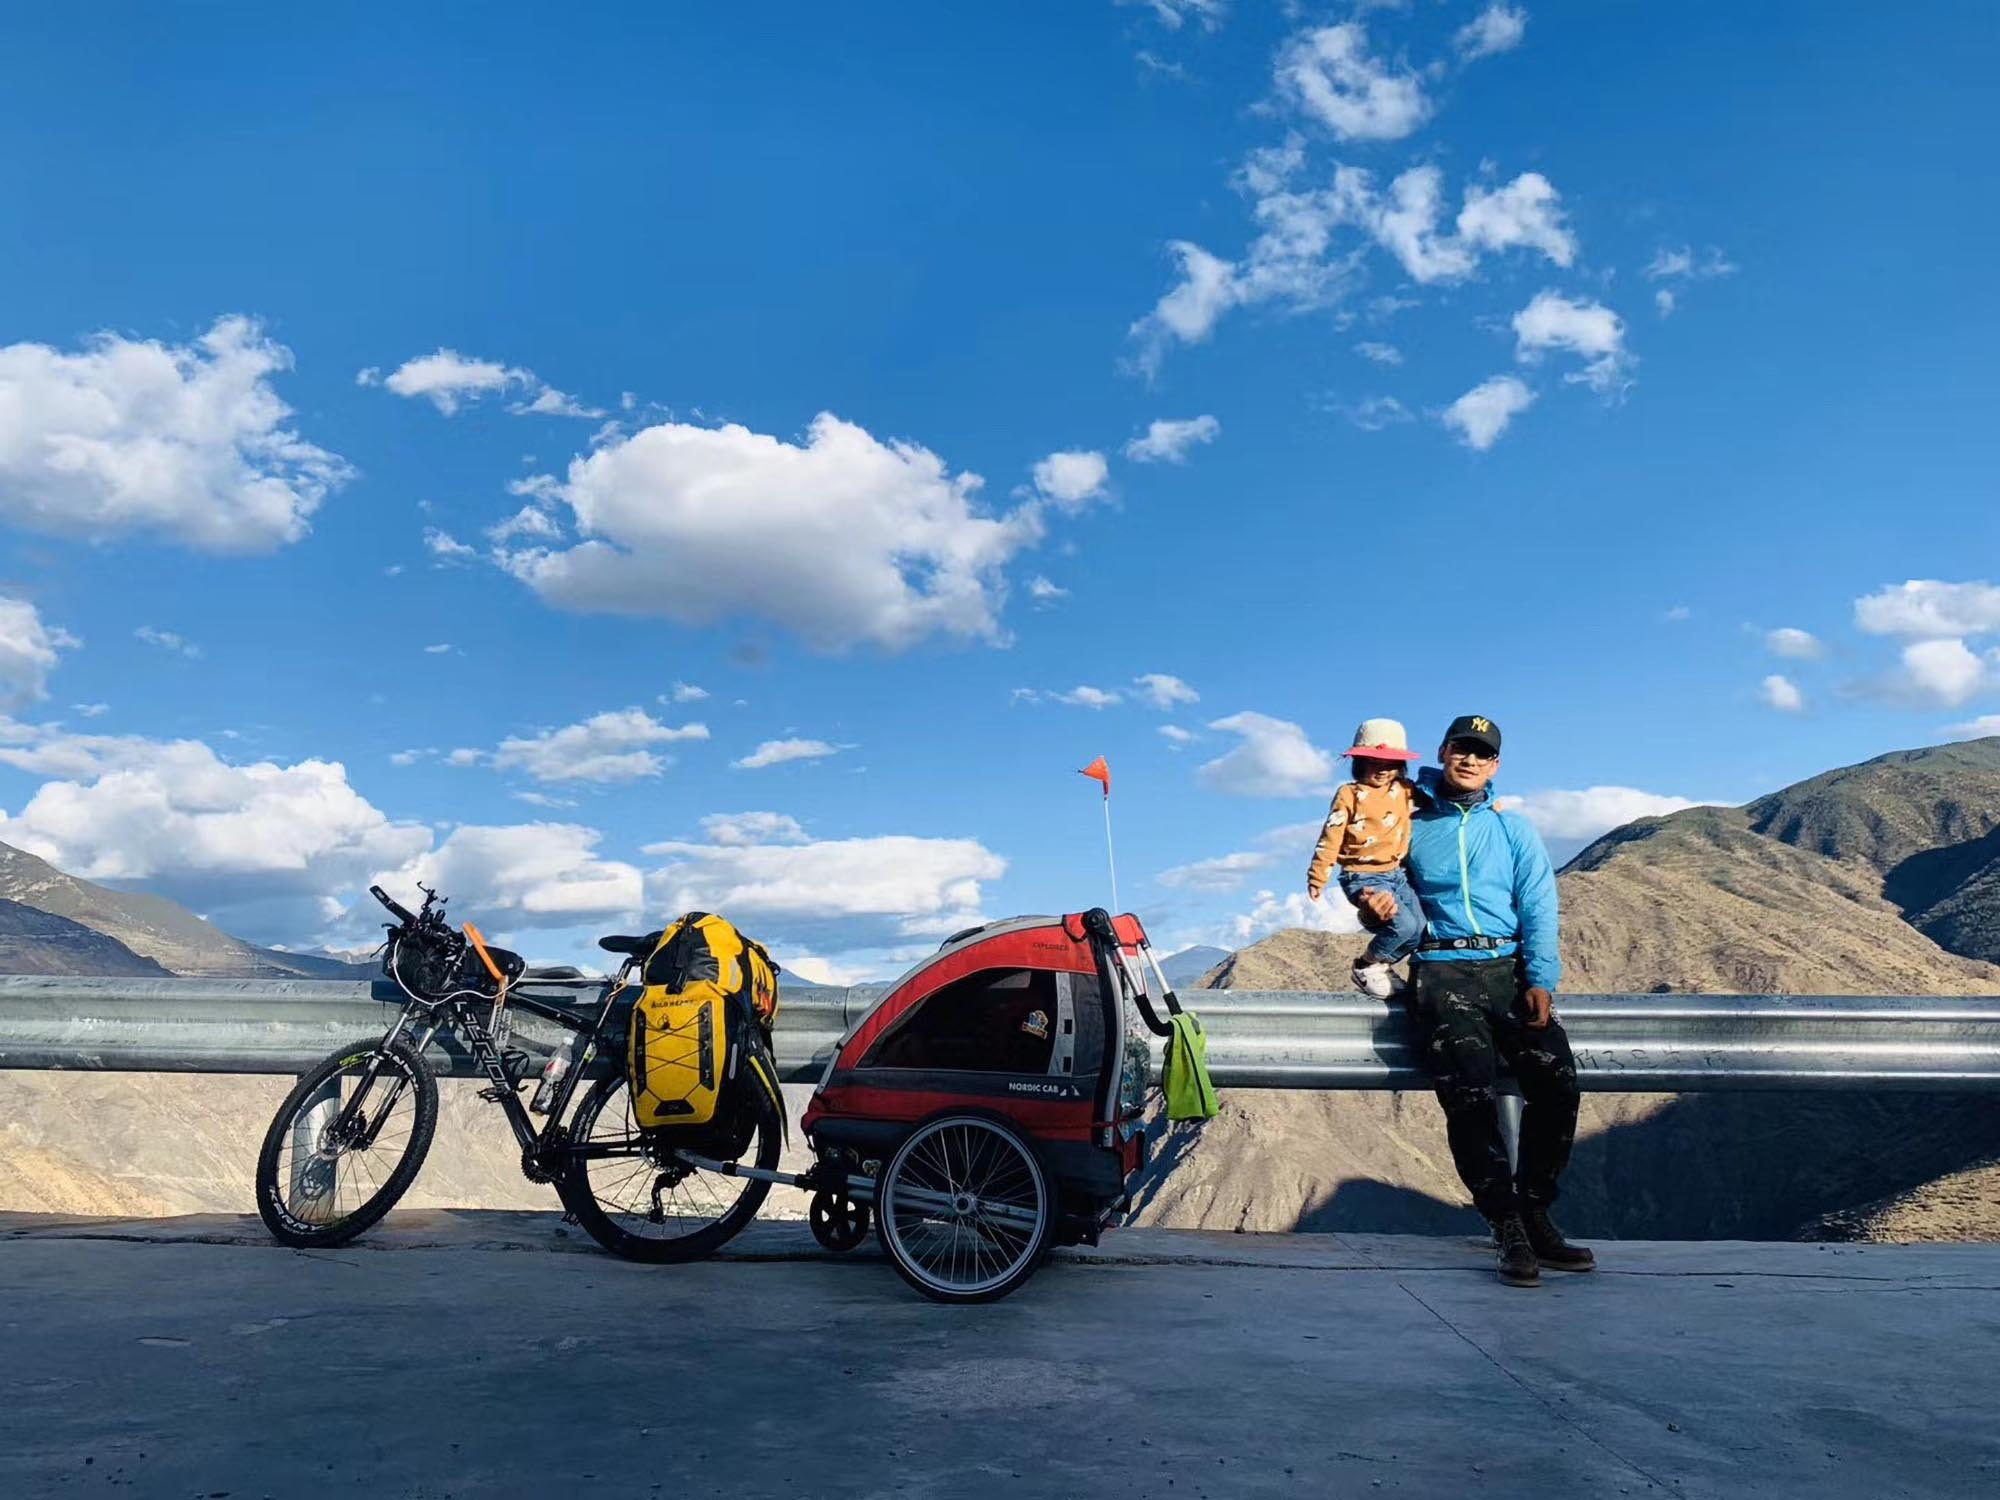 From staying at home to cycling to Tibet